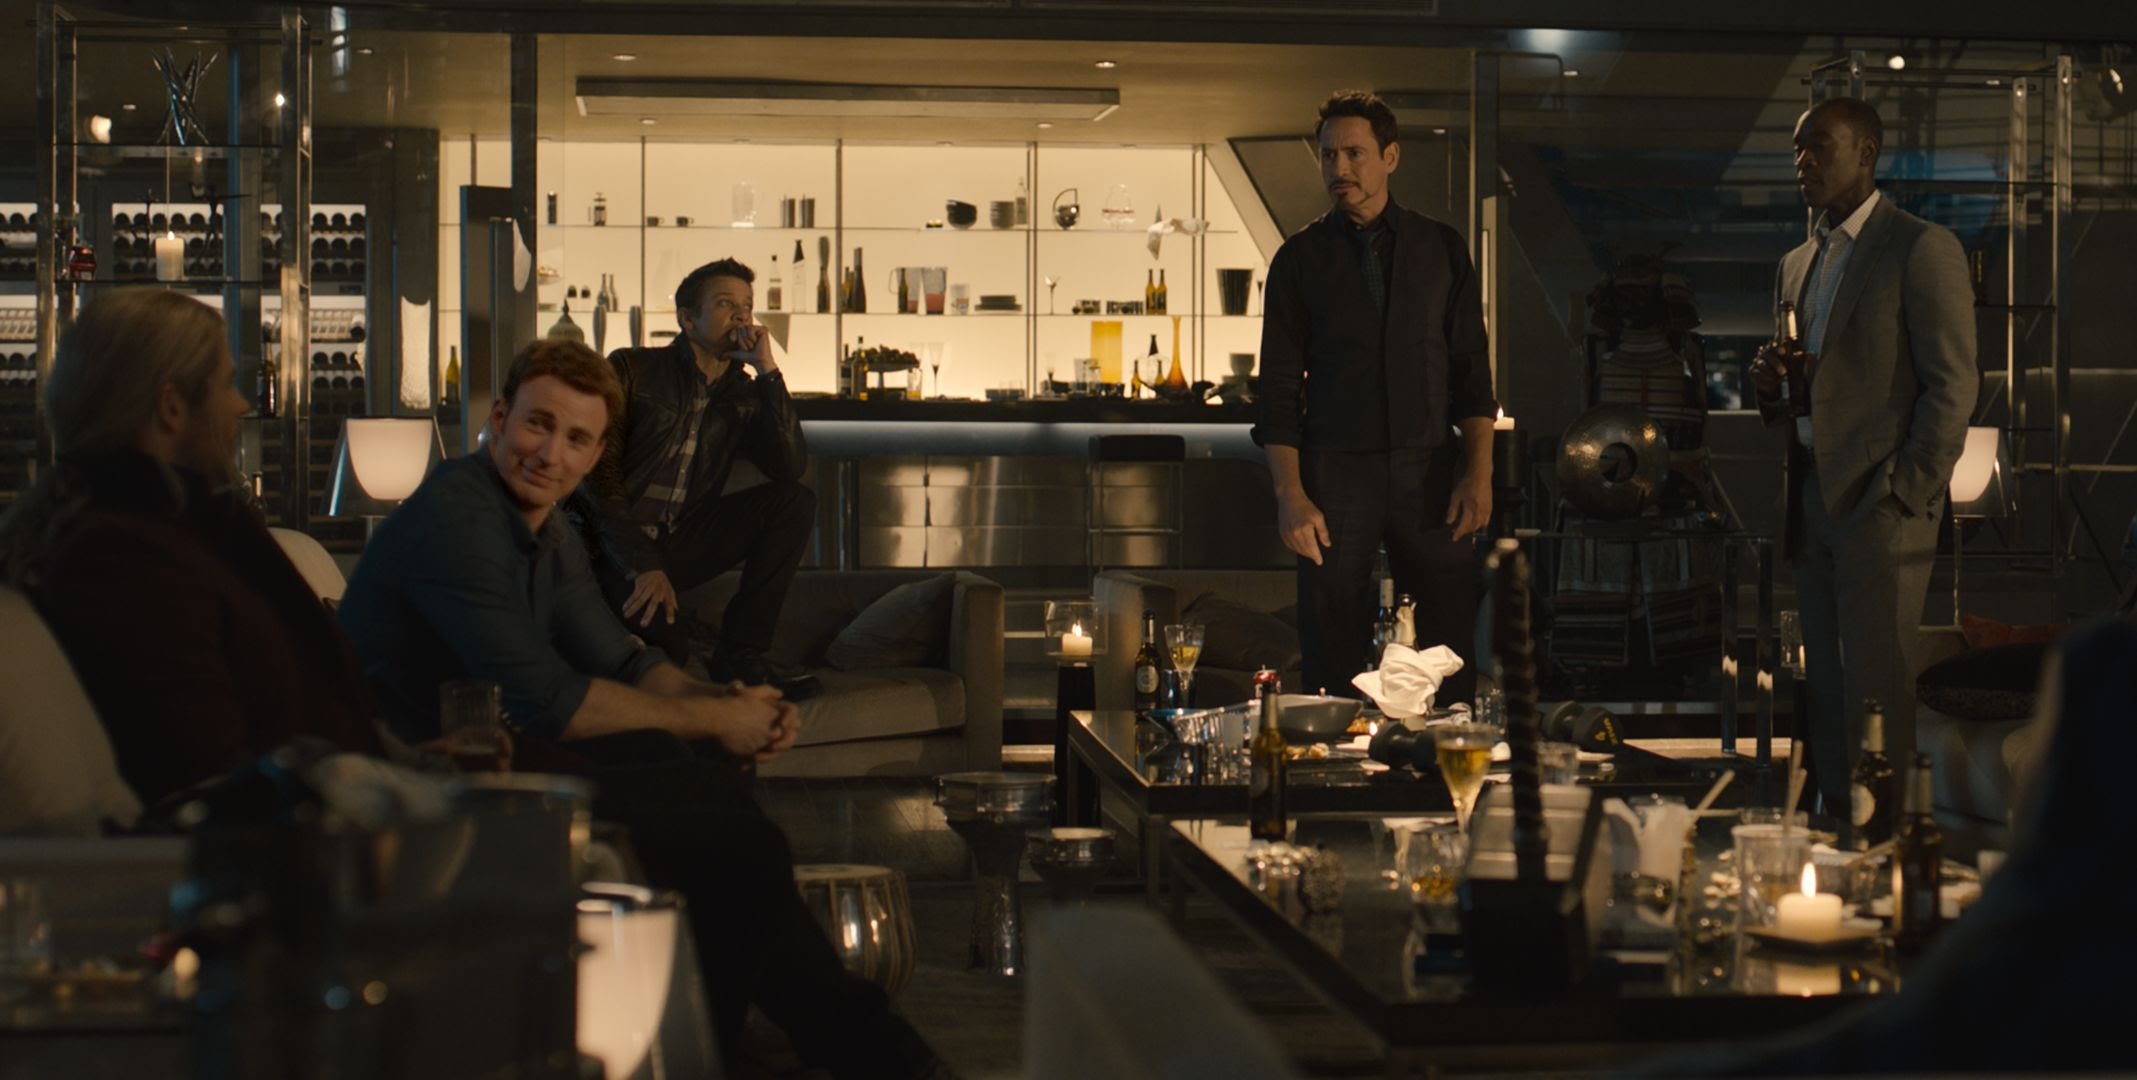 http://cdn.collider.com/wp-content/uploads/avengers-age-of-ultron-avengers-party.jpg